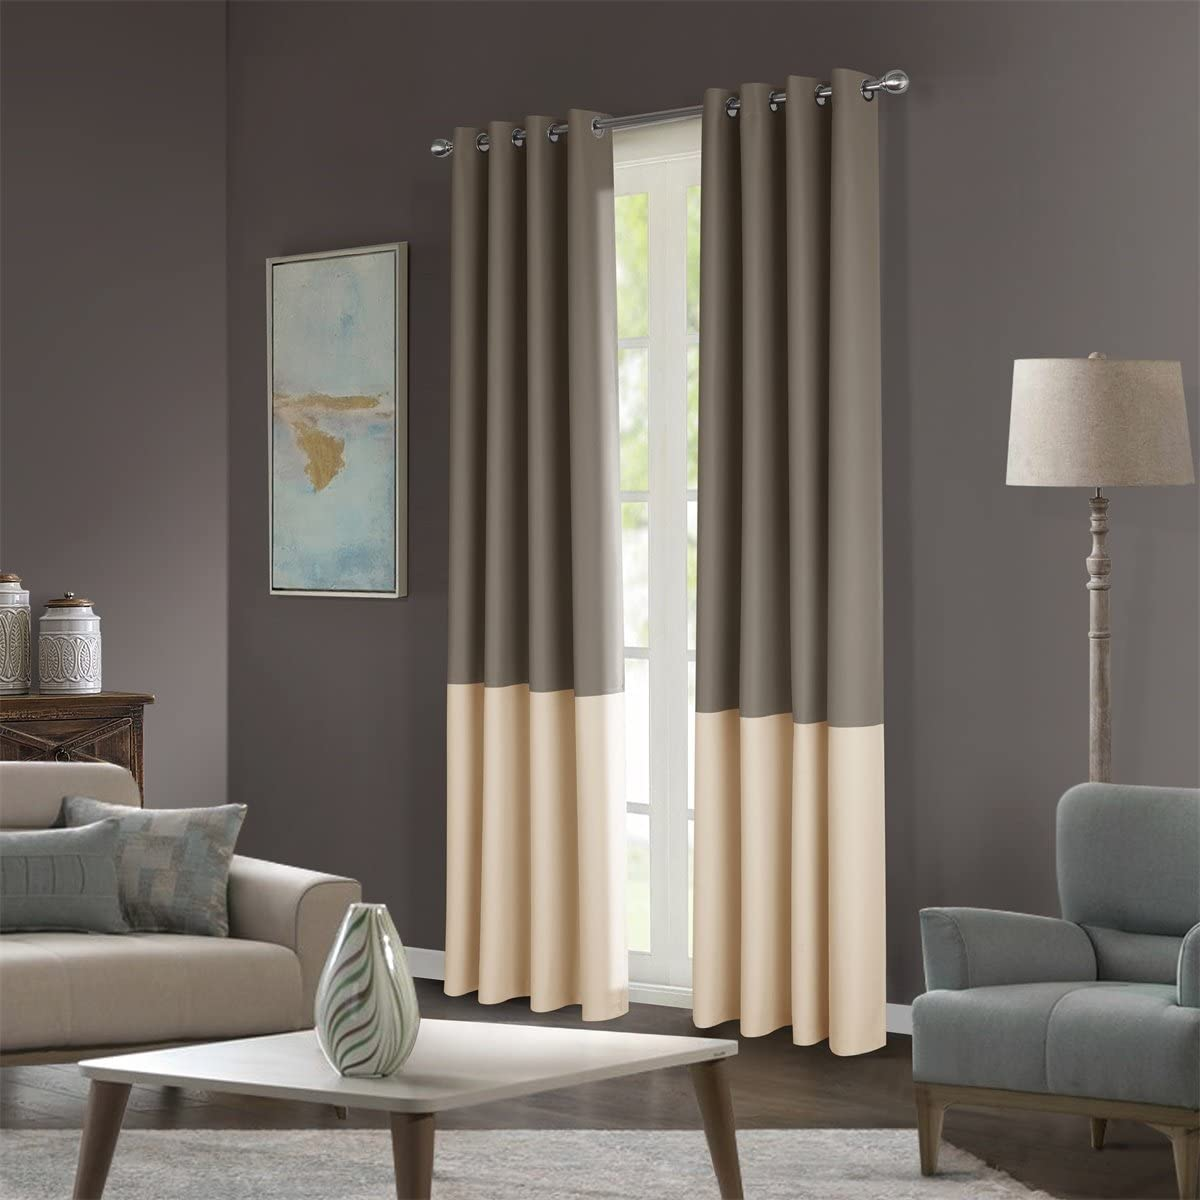 Dreaming Casa Stitching Style Two Tone Curtains Light Blocking Drapes Color Block Curtains 100 Wide Blackout Wide Panel Curtains Window Treatment Grommet Top 2 Panels Taupe Beige 100 W x 63 L